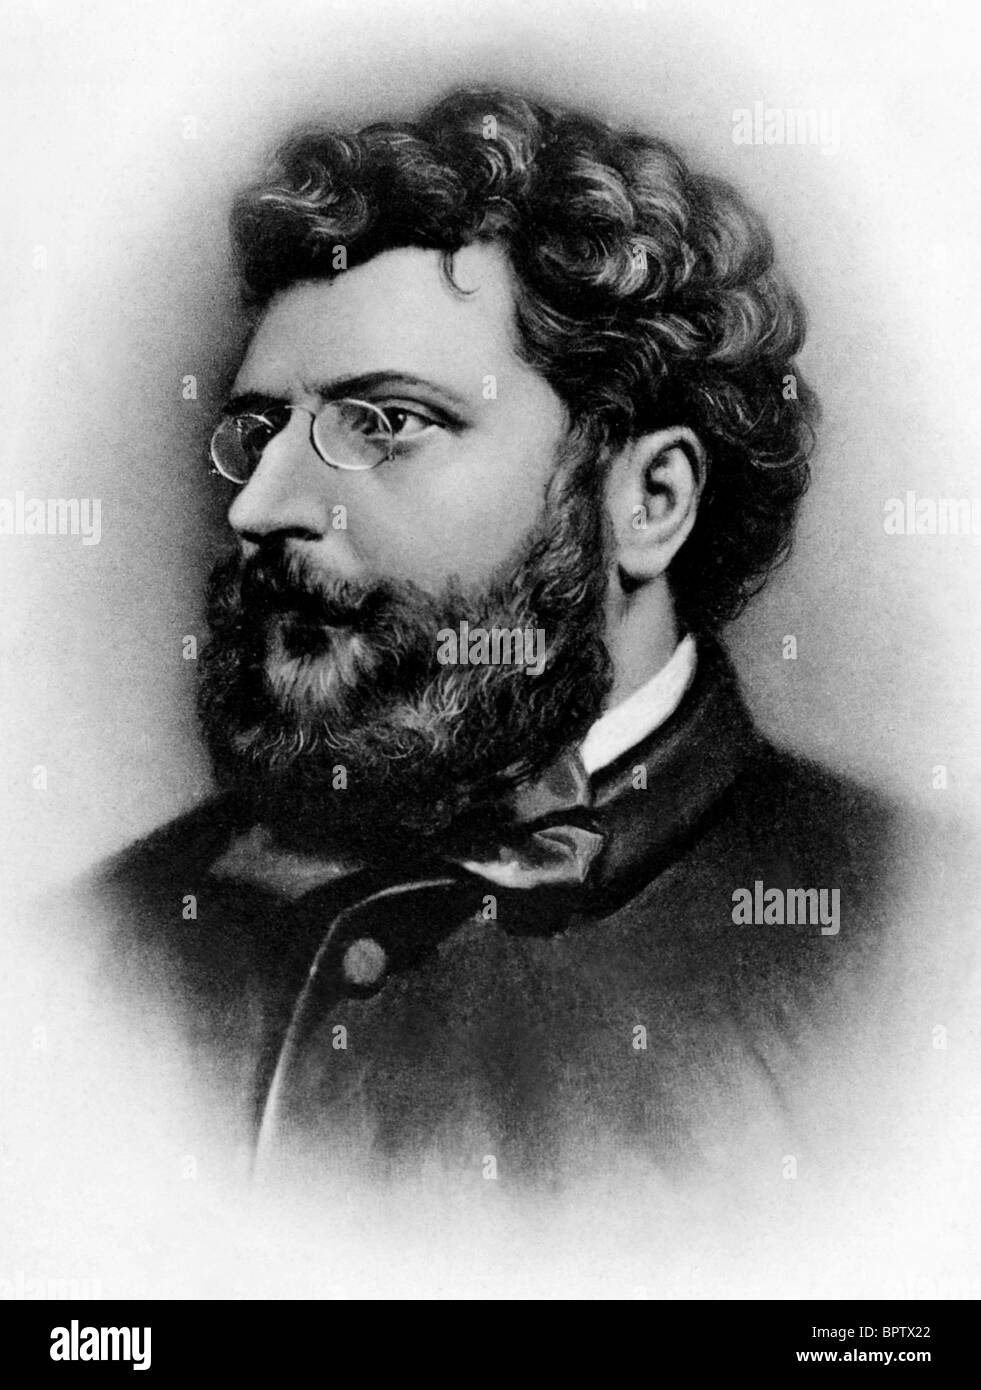 GEORGES BIZET MUSIC COMPOSER (1883) - Stock Image